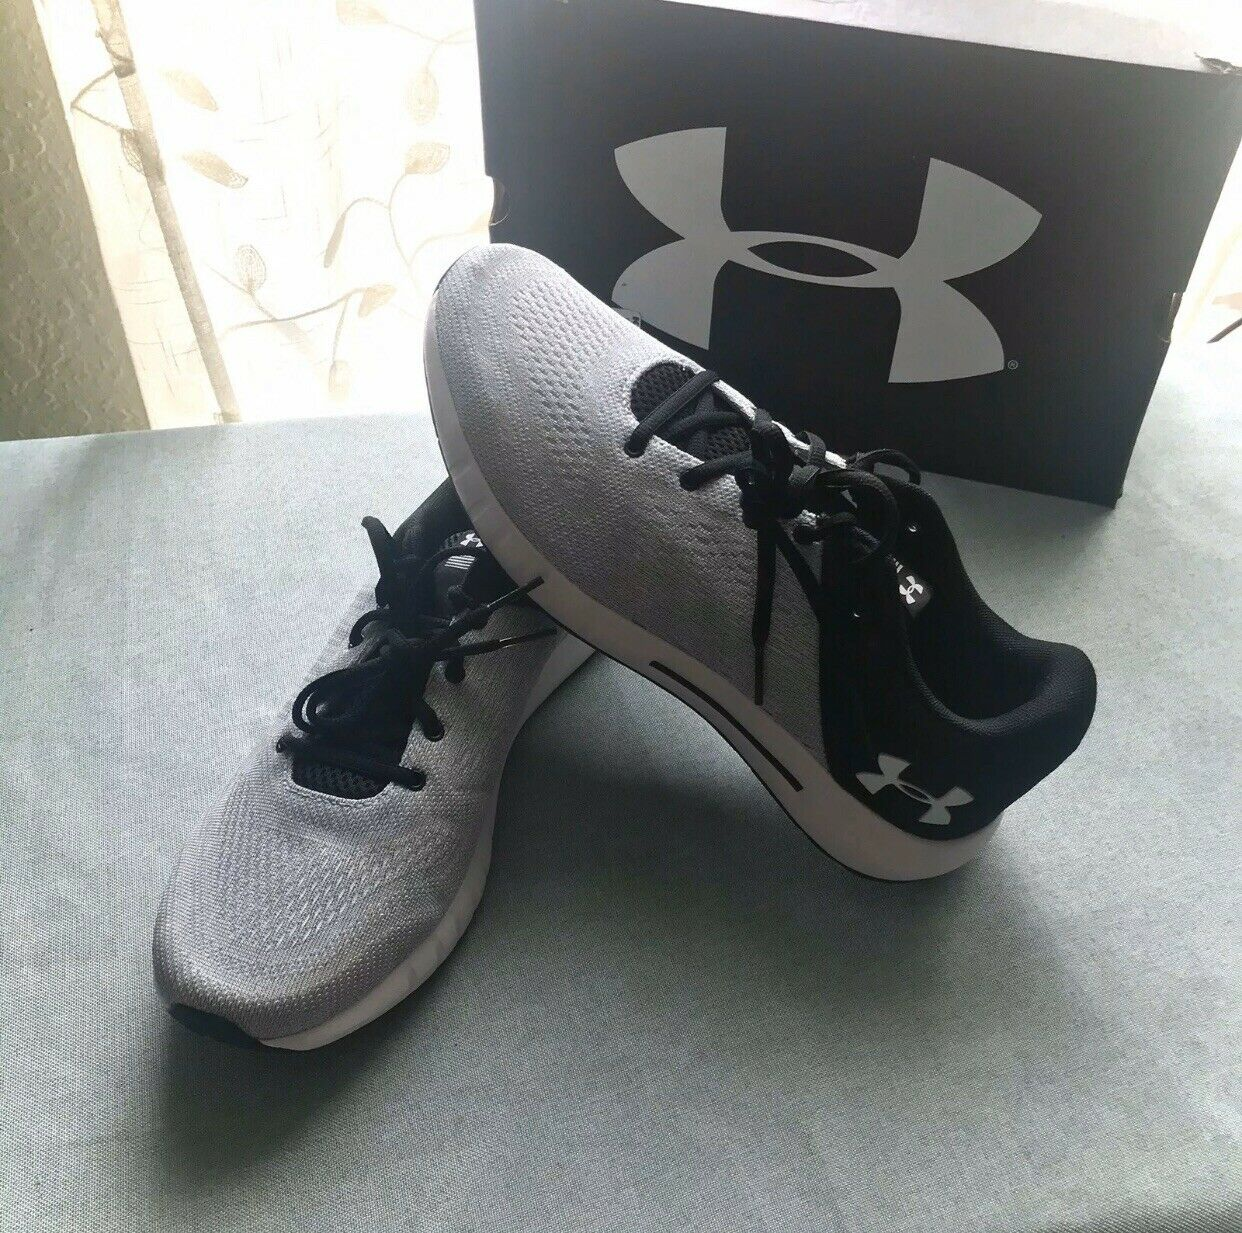 Excepcional ritmo puntada  Men Under Armour Micro G Ignite Running Shoe Size 11 - 1238586-035 for sale  online | eBay